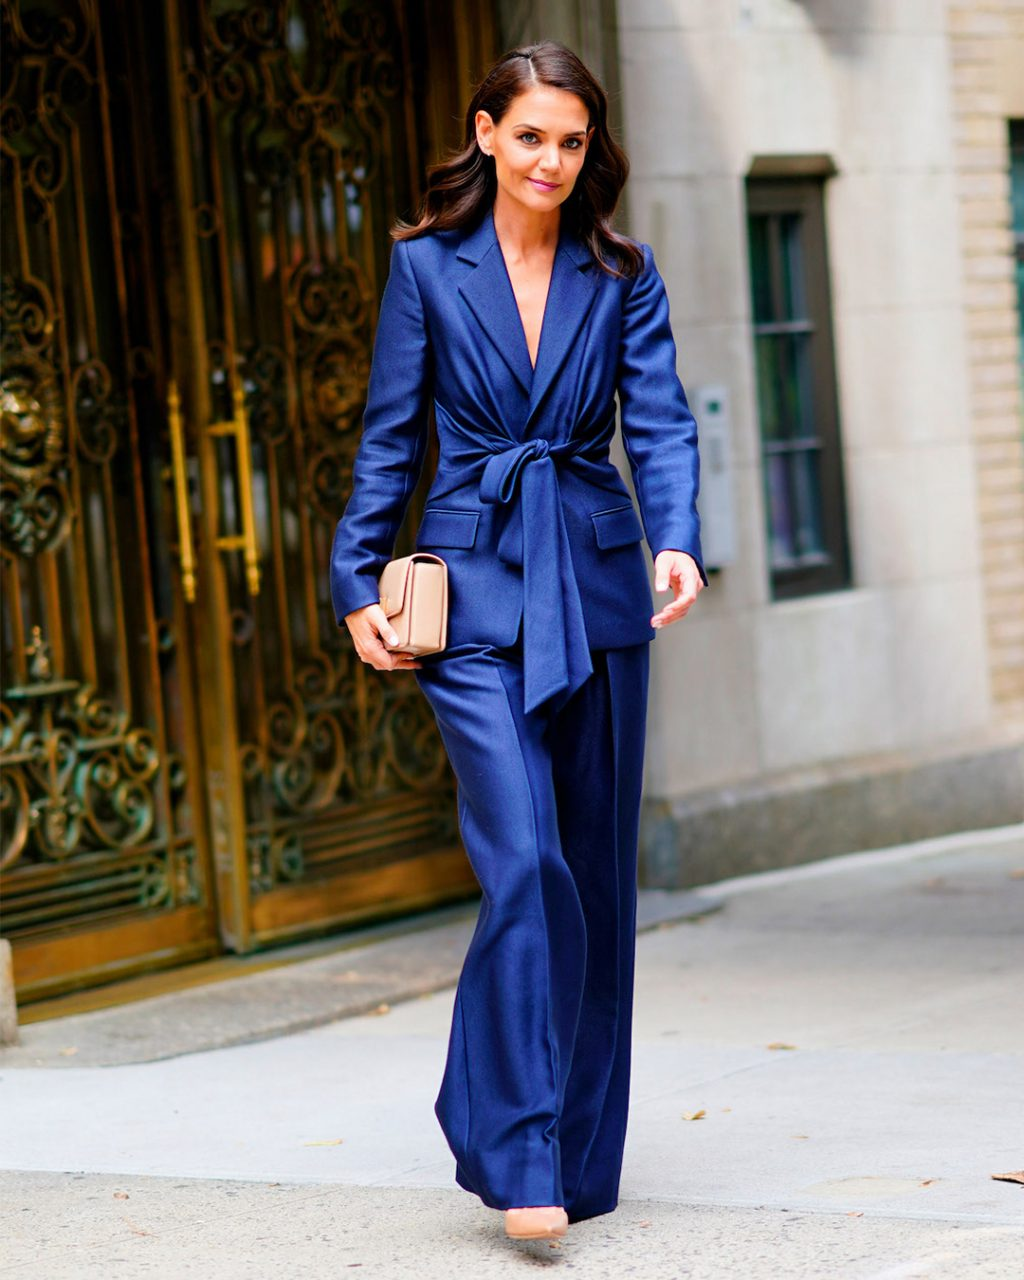 Have You Noticed How Incredible Katie Holmes Looks Lately?